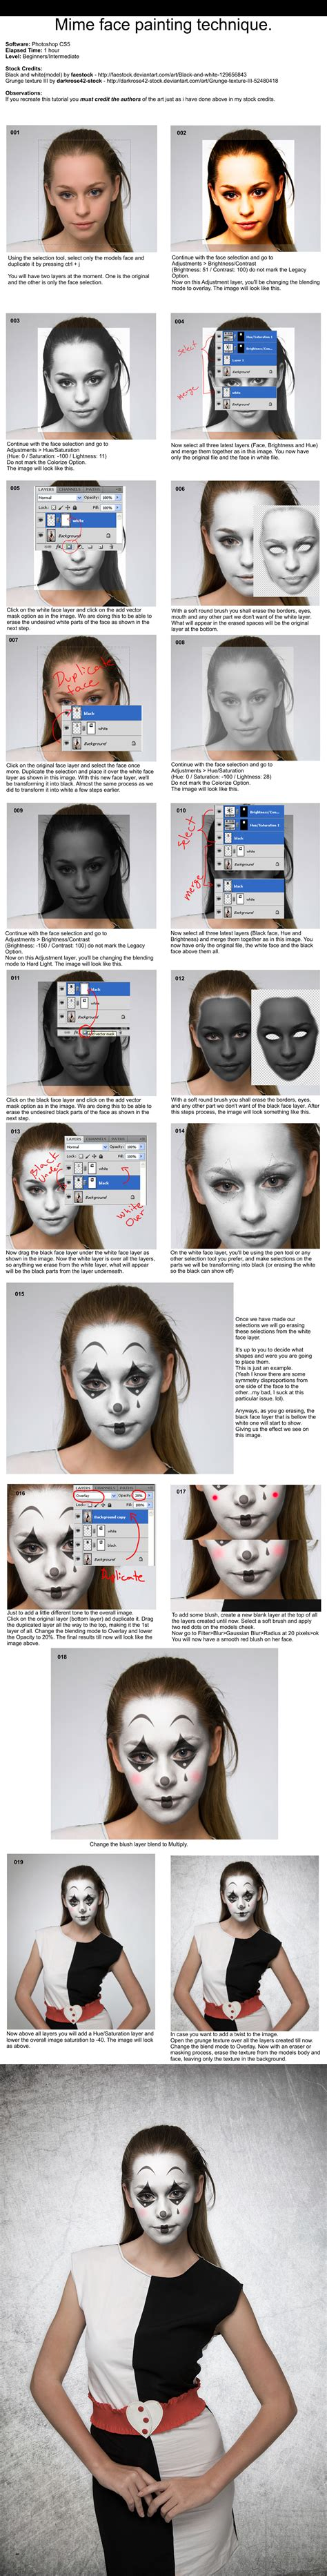 tutorial photoshop deviantart mime face painting tutorial photoshop by pshoudini on